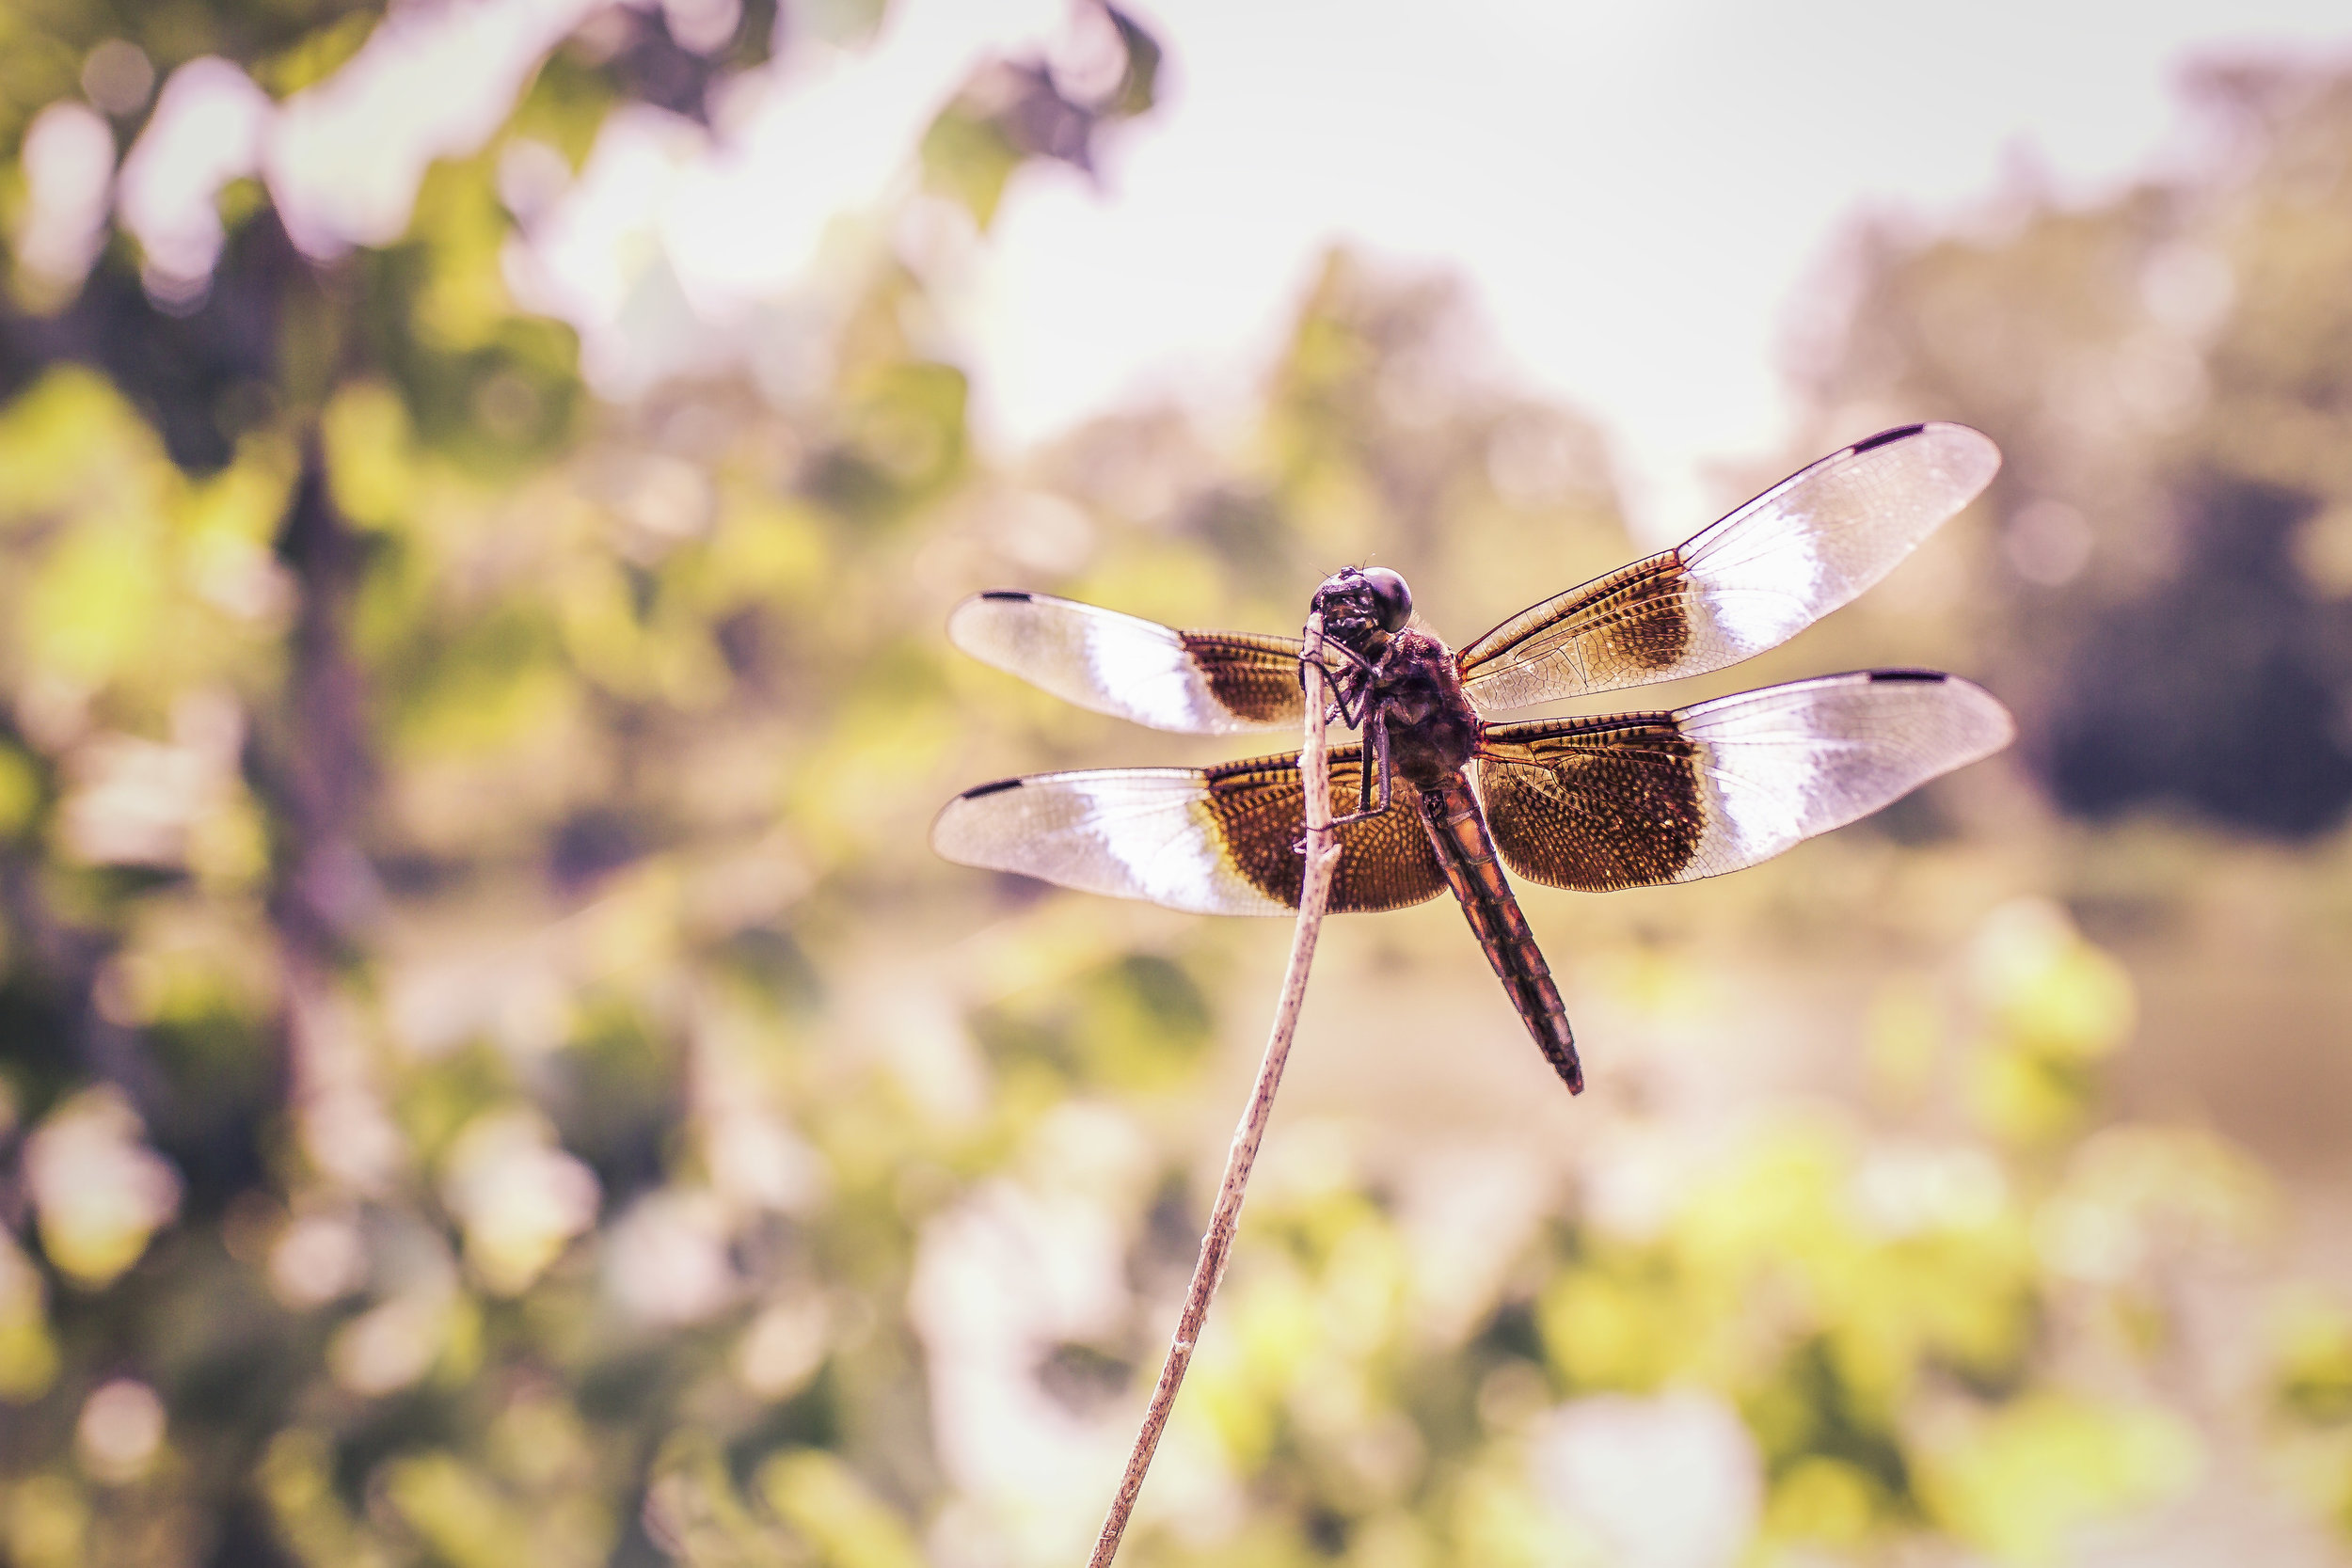 The dragonfly symbolizes great change, with the ability to change direction mid-flight